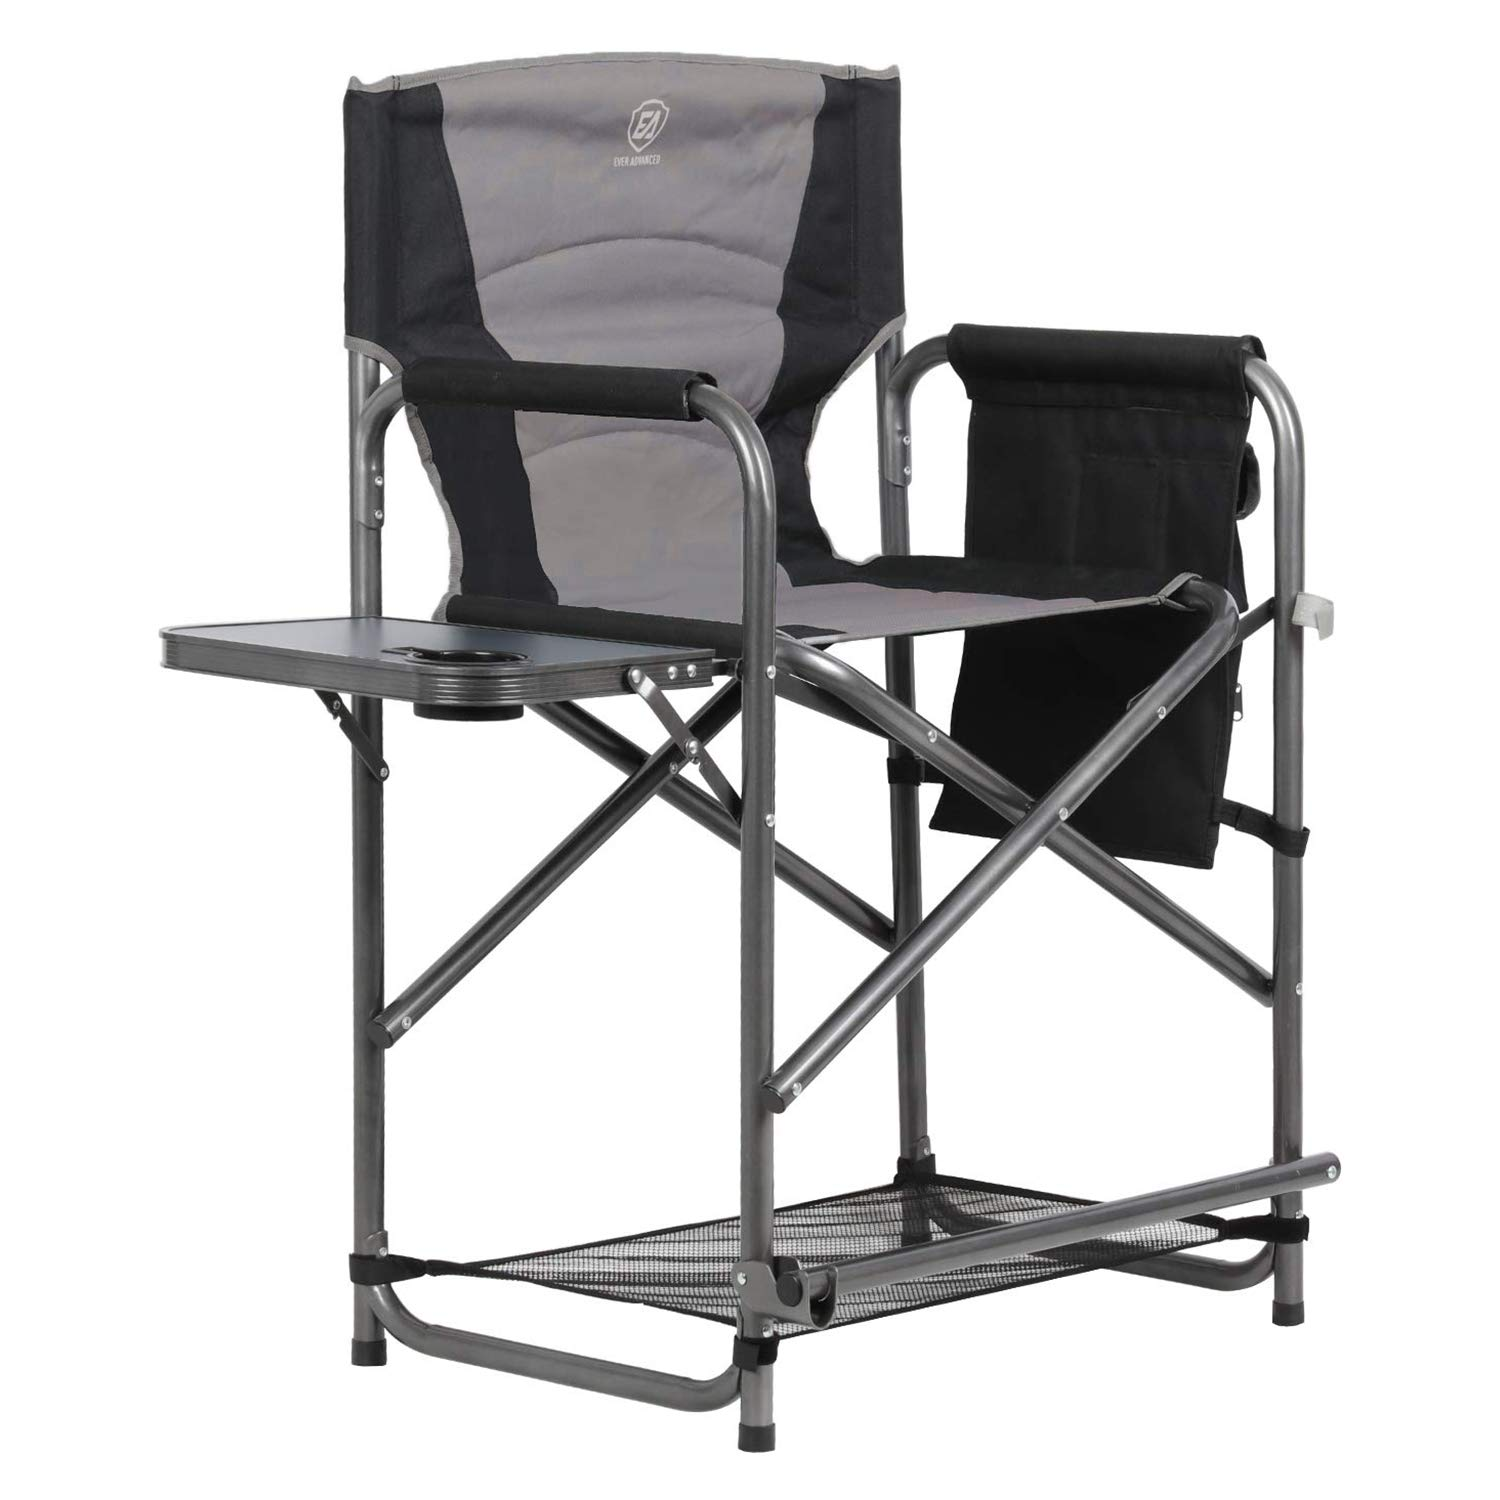 Tall Outdoor Folding Chairs.Ever Advanced Tall Directors Chair Bar Height Foldable Makeup Artist Chair With Side Table Cup Holder Side Storage Bag Footrest Supports 300lbs